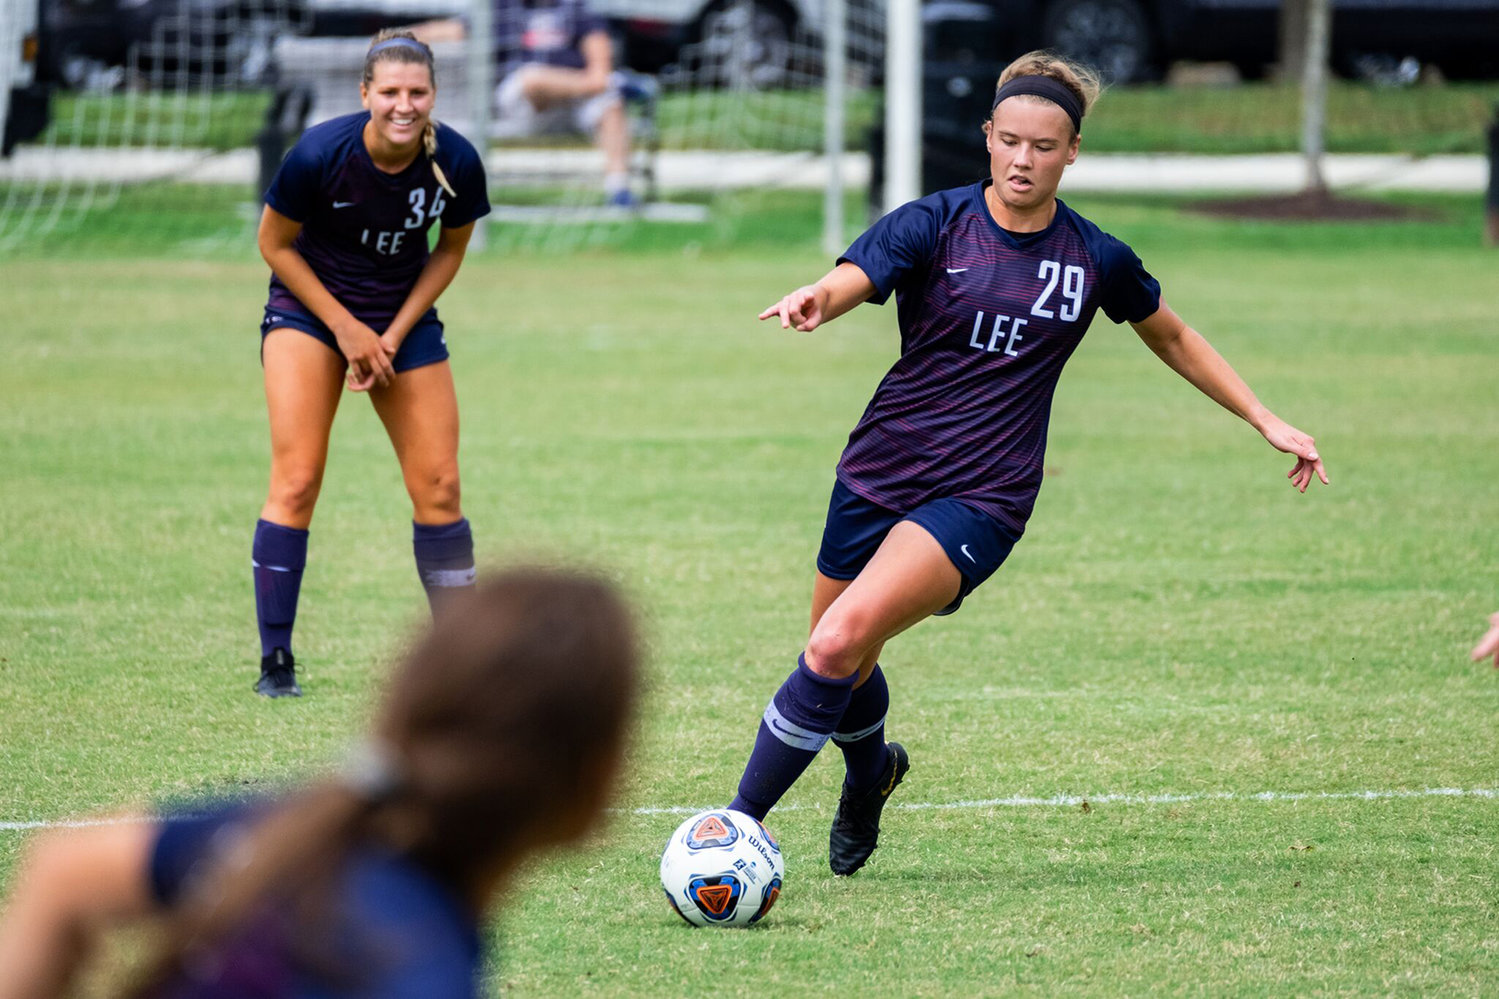 LEE UNIVERSITY junior Kelsey Yoder scored her first goal of 2019 in Sunday's win at CBU, in Memphis.